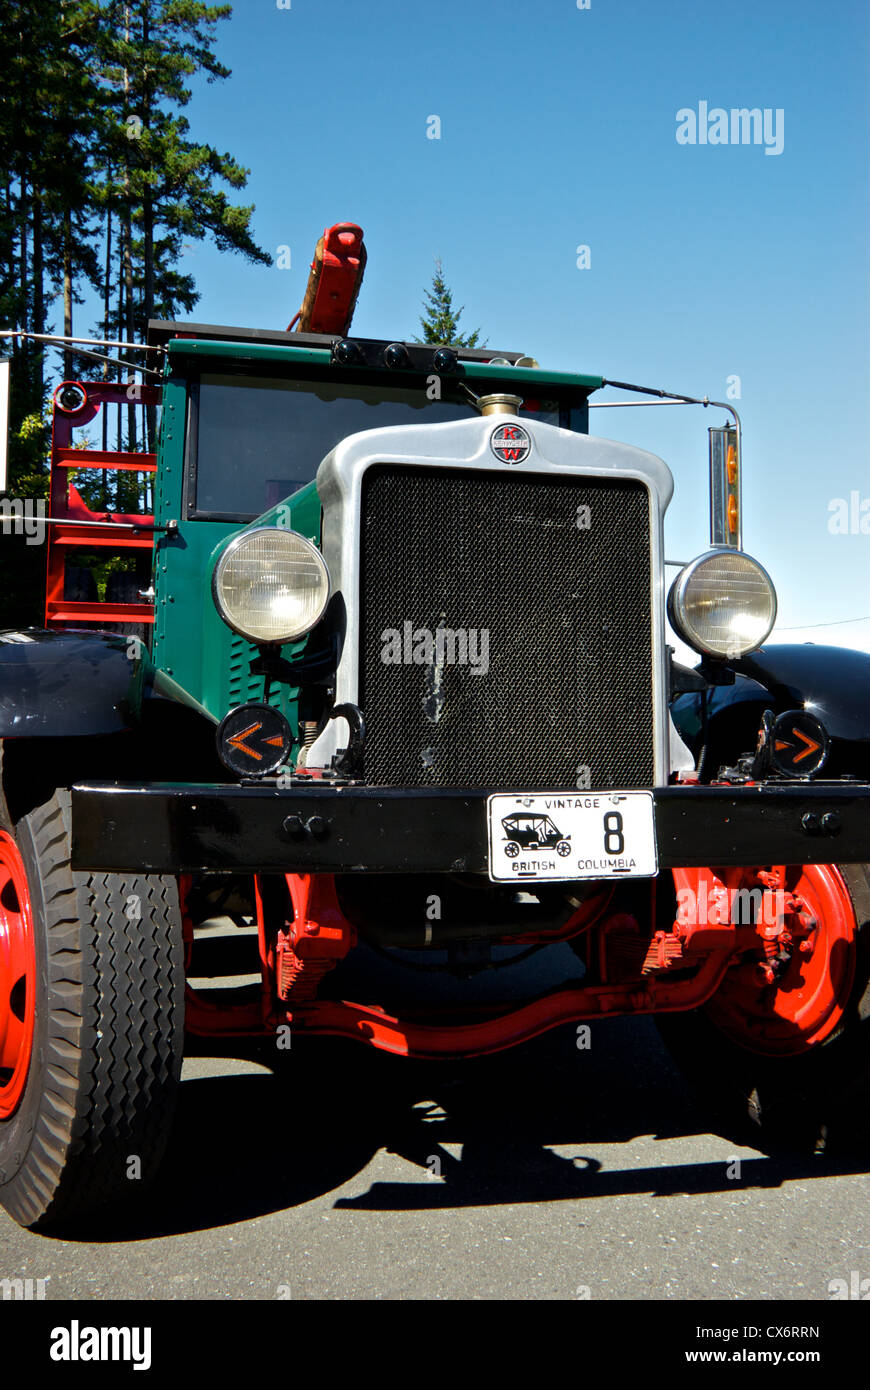 Restored vintage antique 1930 Kenworth logging truck on display Museum at Campbell River BC Canada - Stock Image